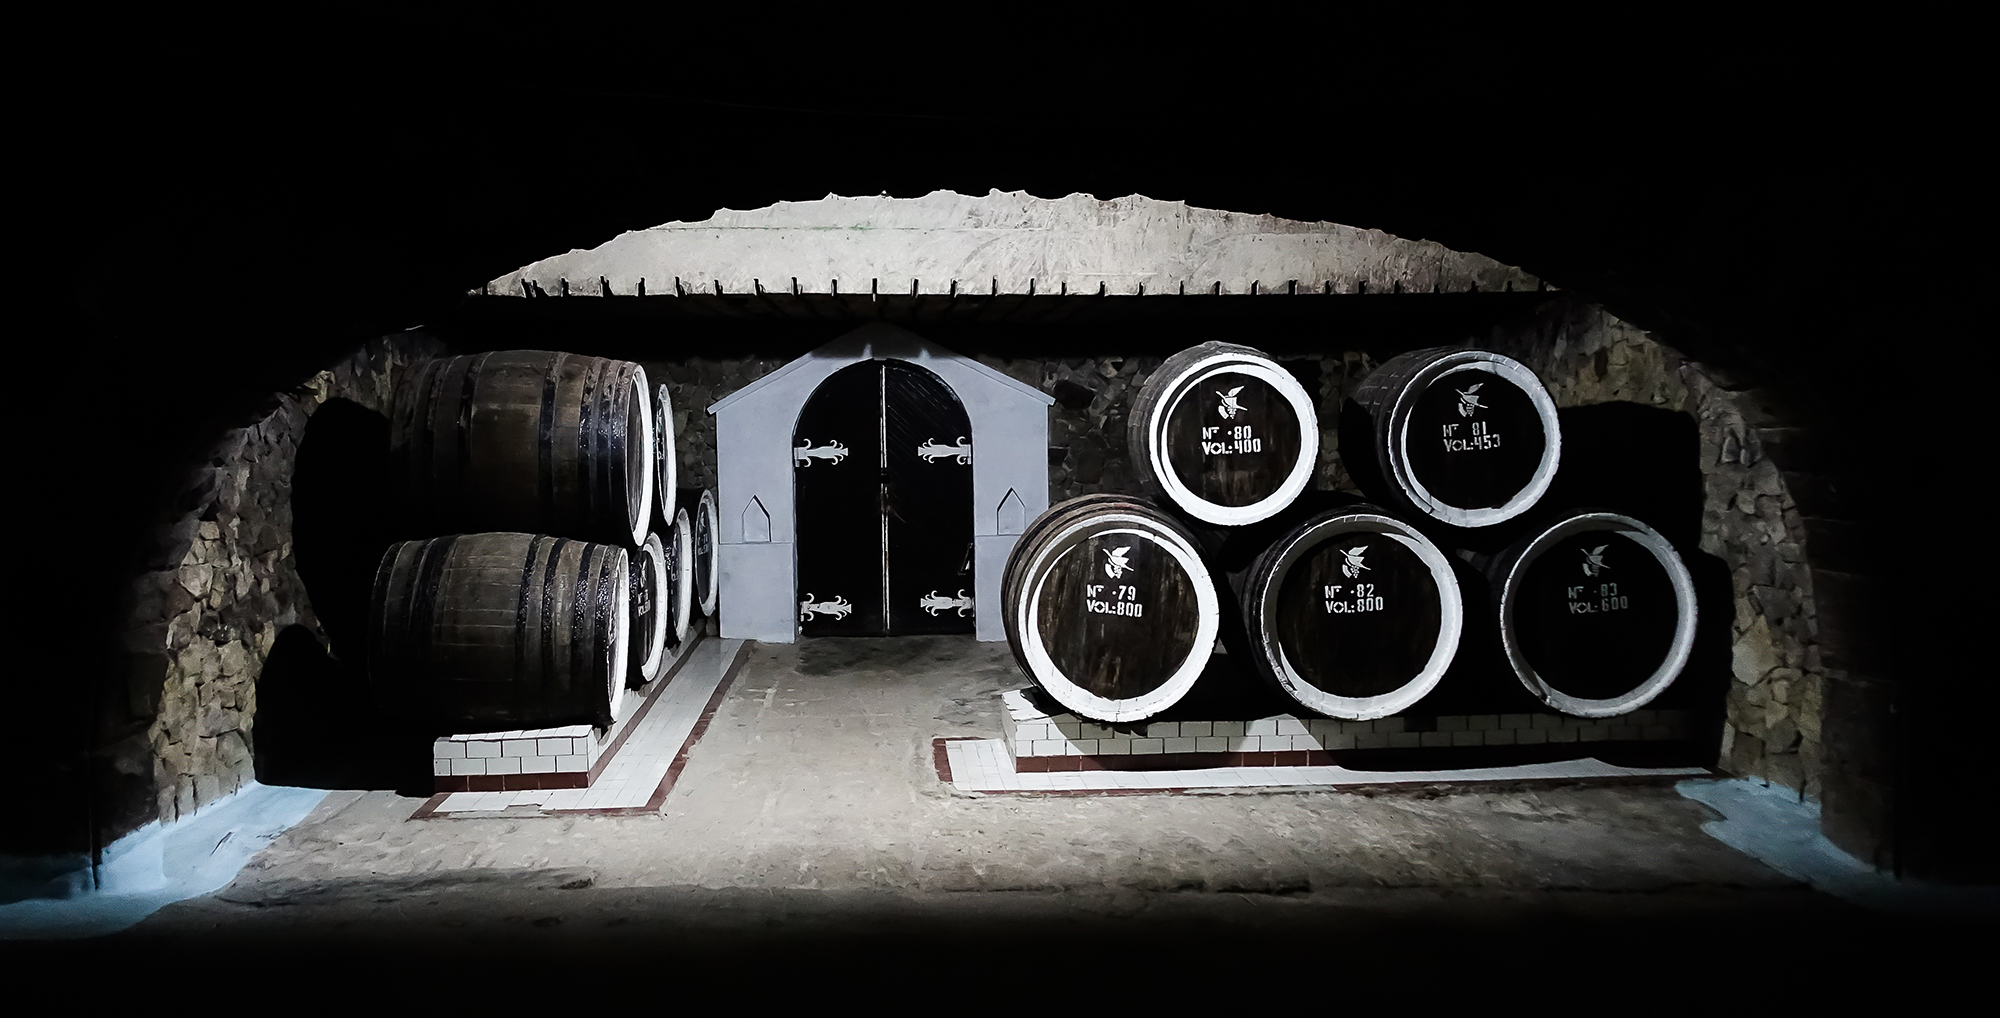 MOLDOVA: A ROADTRIP INTO THE WORLD'S LARGEST WINE CELLAR